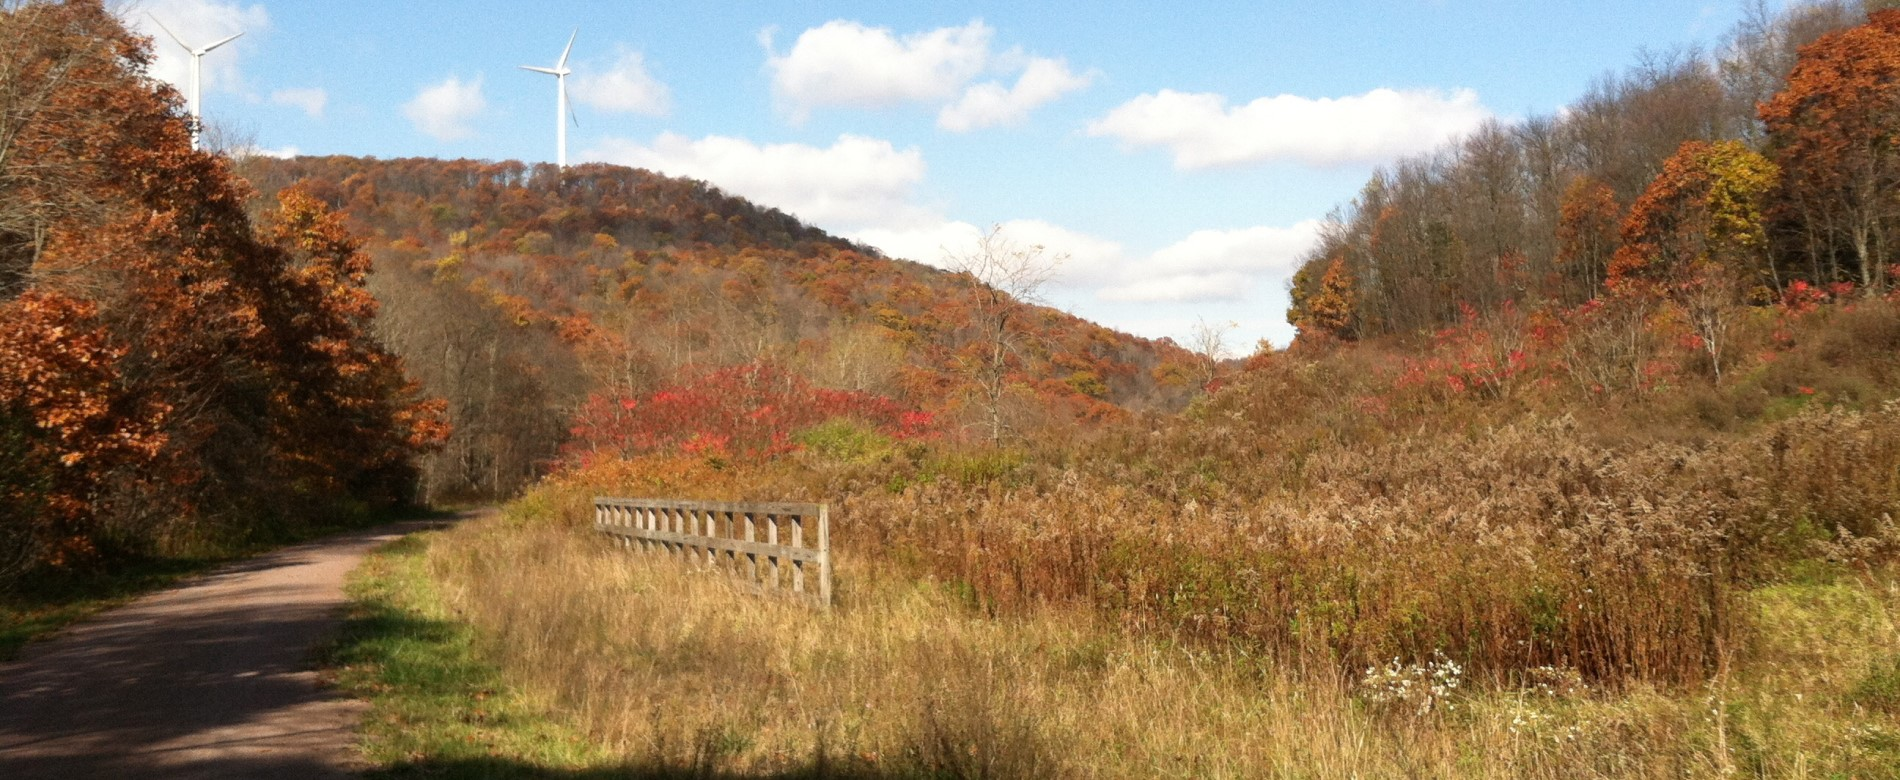 The Great Allegheny Passage in the fall